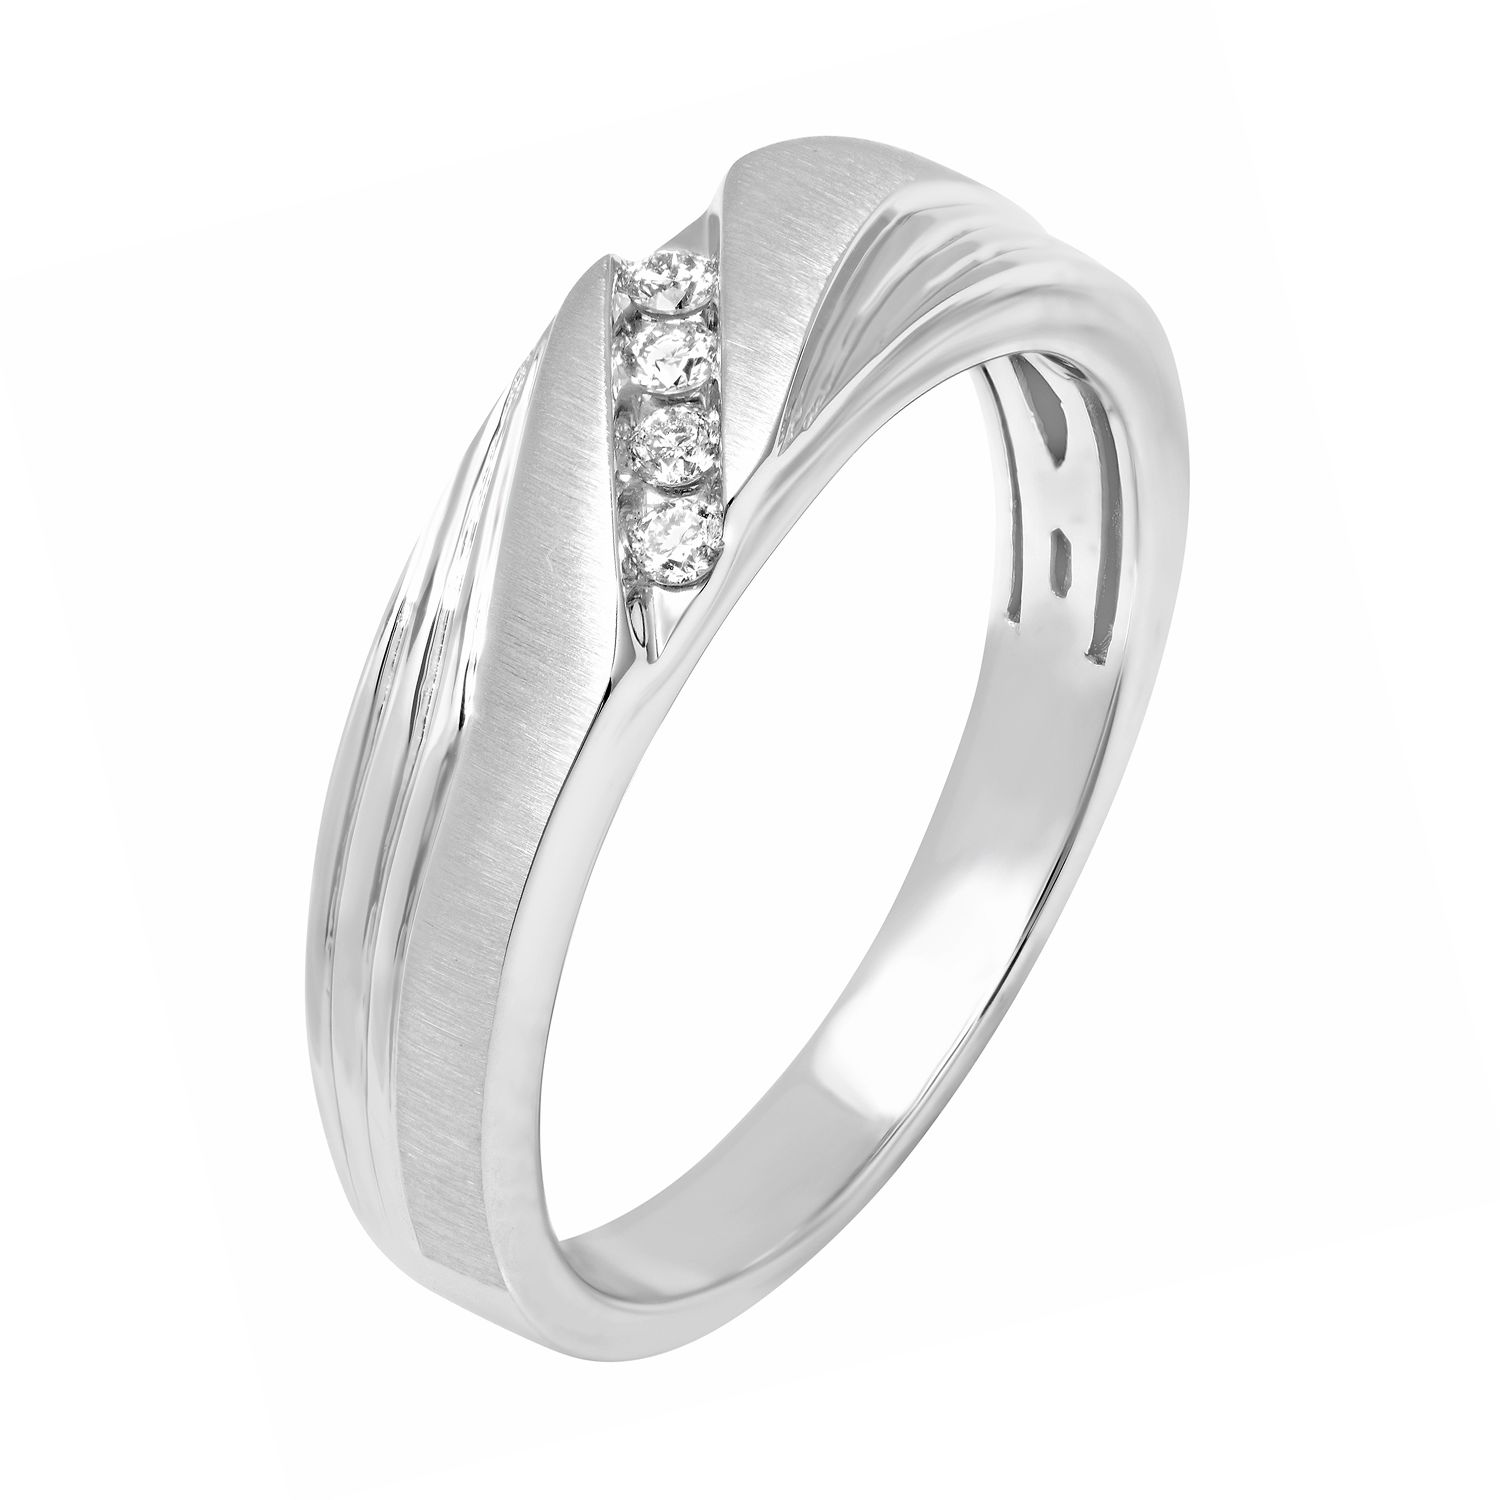 wedding jewellery jones ring product occasion number ernest grooms category material l white rings gold webstore